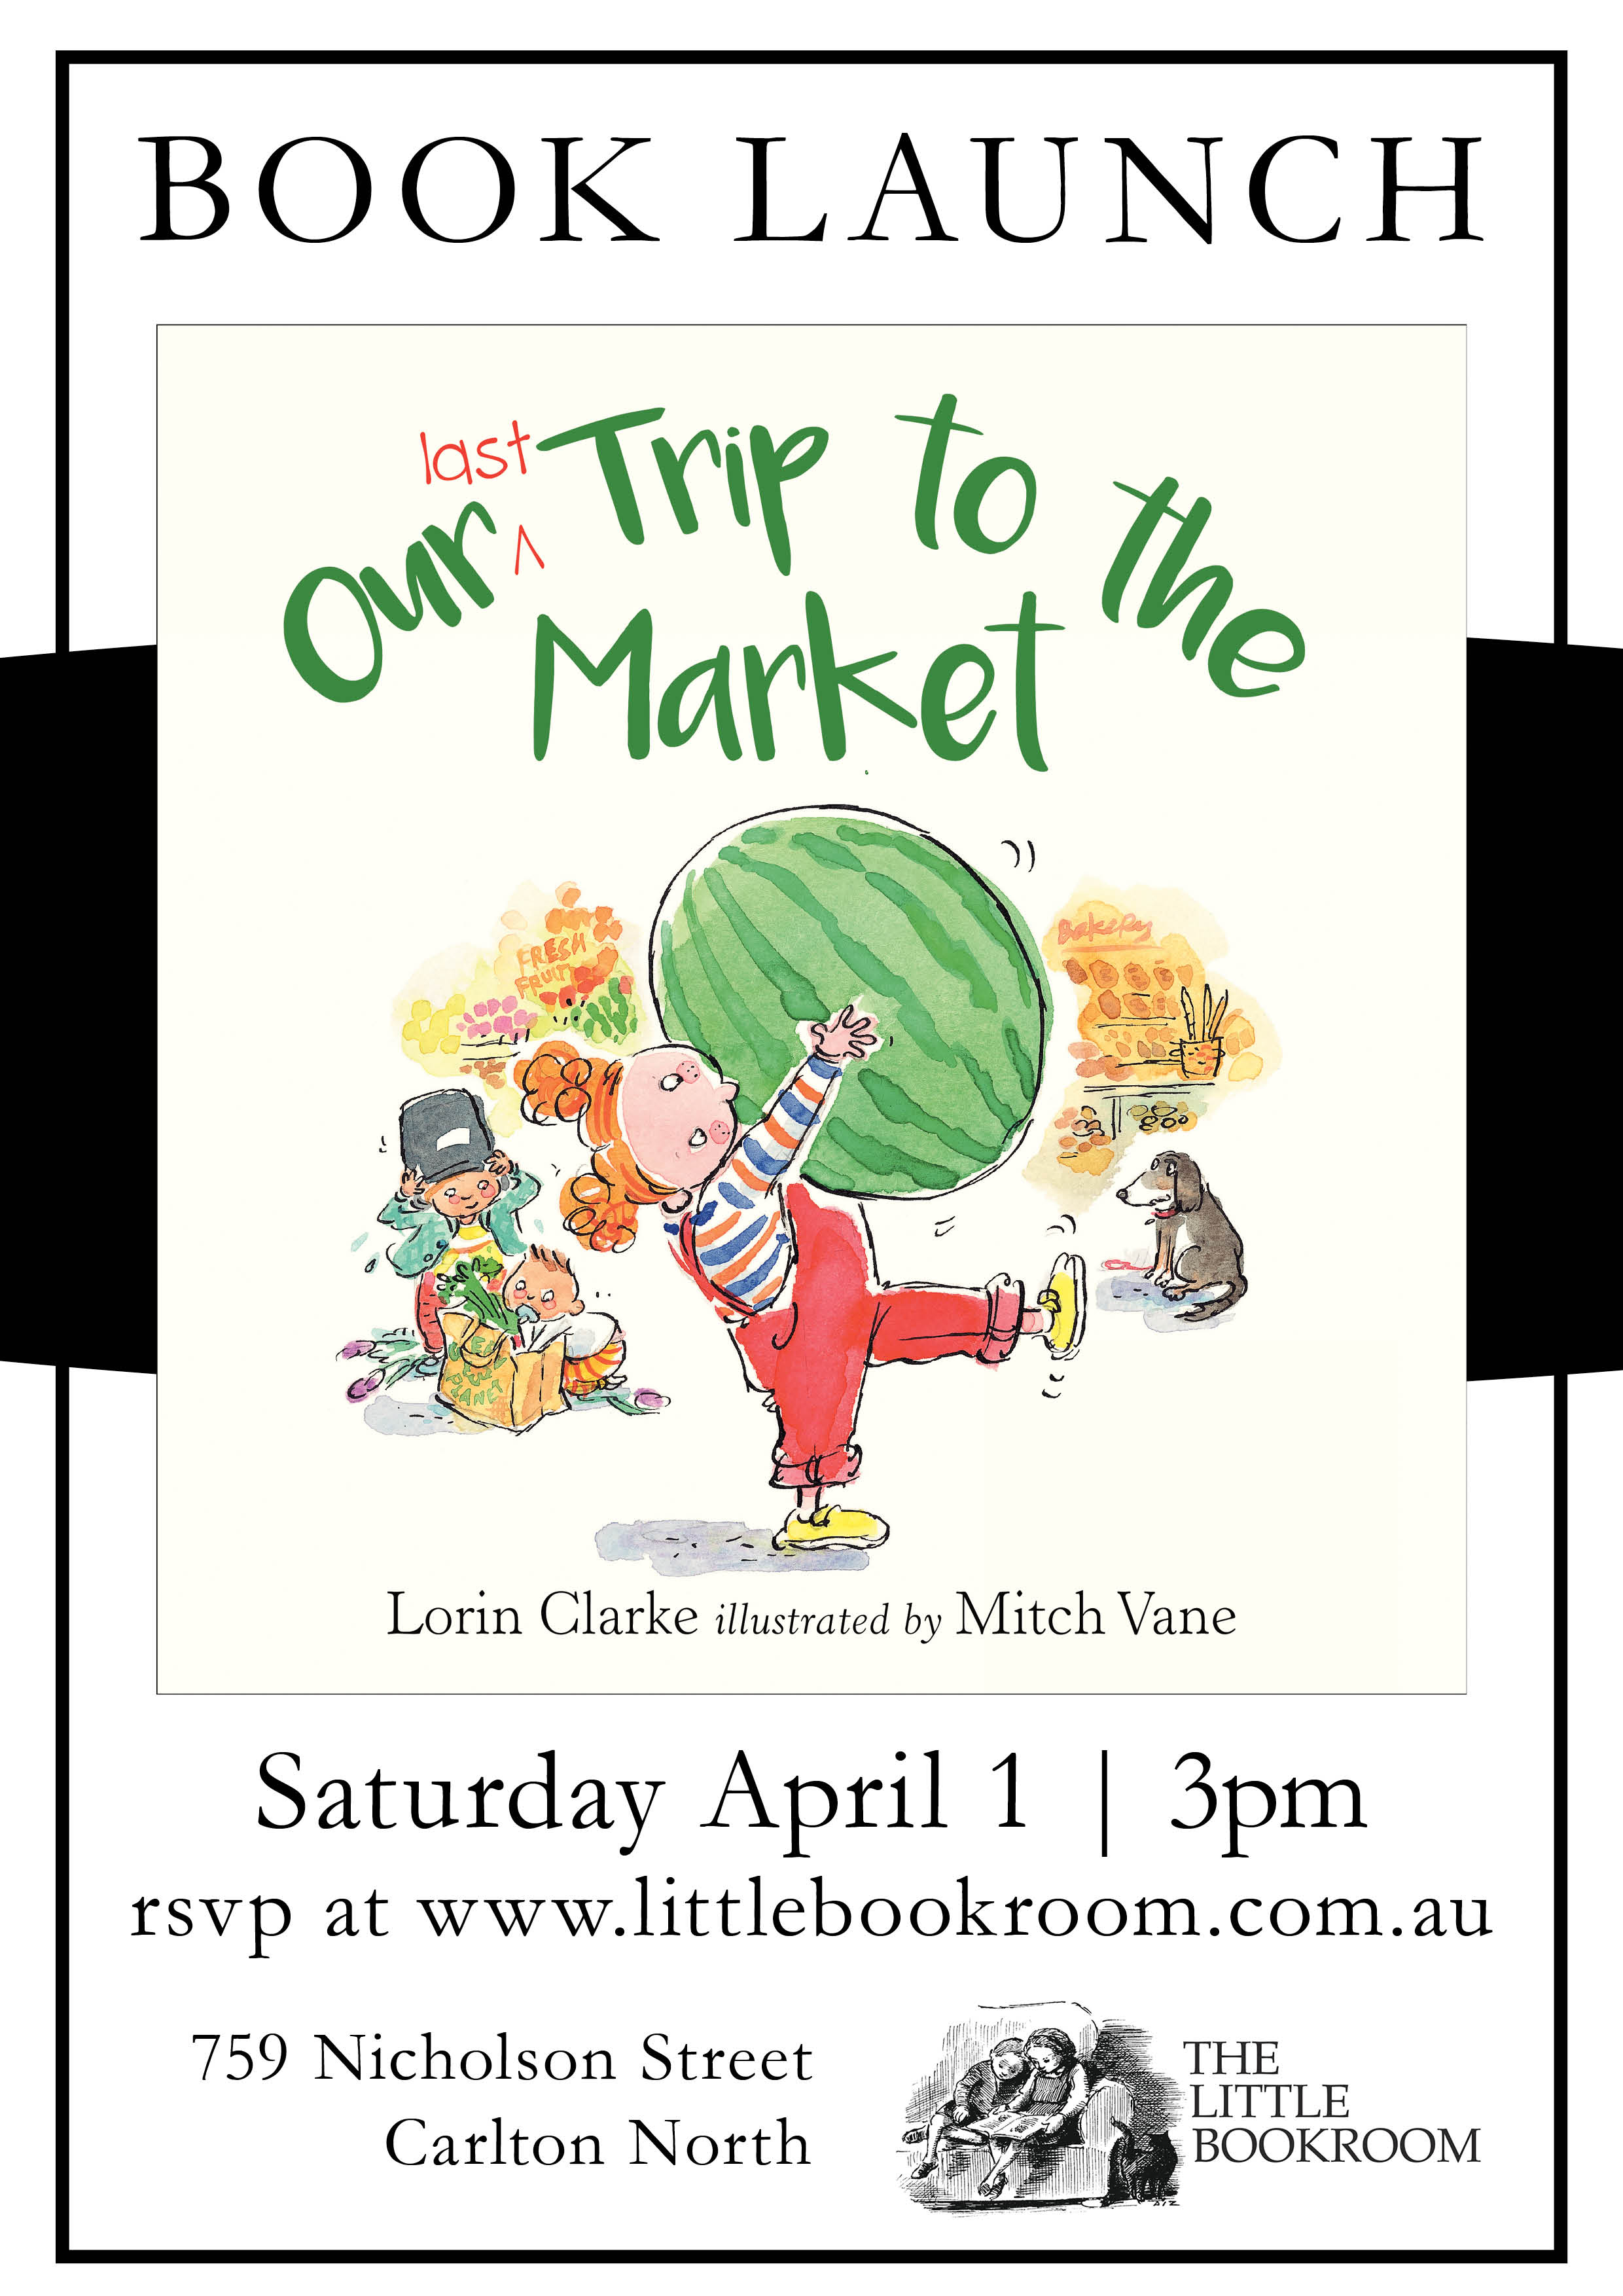 Book Launch: Our Last Trip to Market